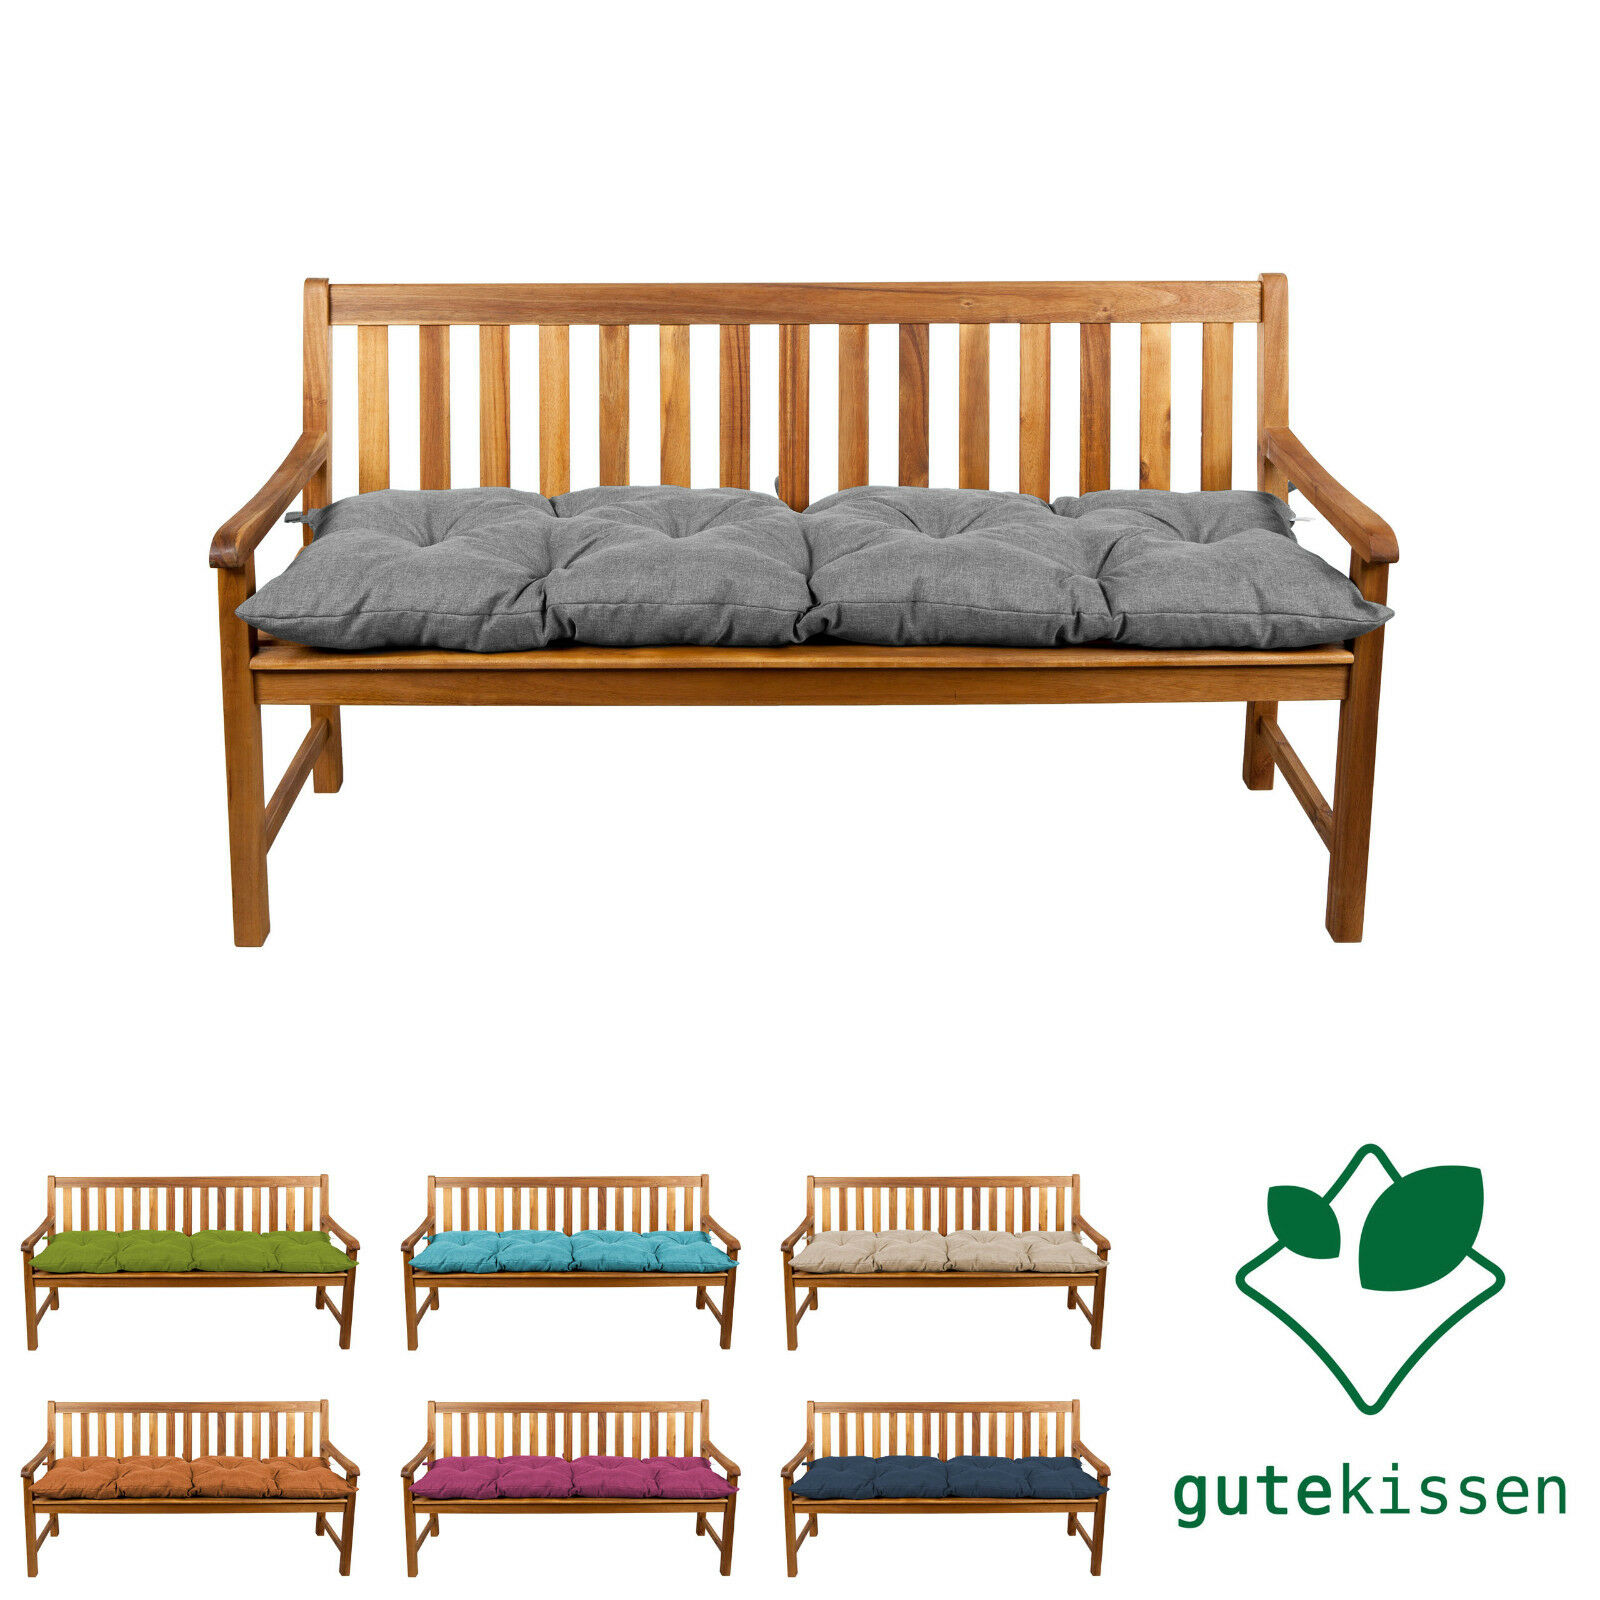 auflage hollywoodschaukel 150 test vergleich auflage hollywoodschaukel 150 g nstig kaufen. Black Bedroom Furniture Sets. Home Design Ideas